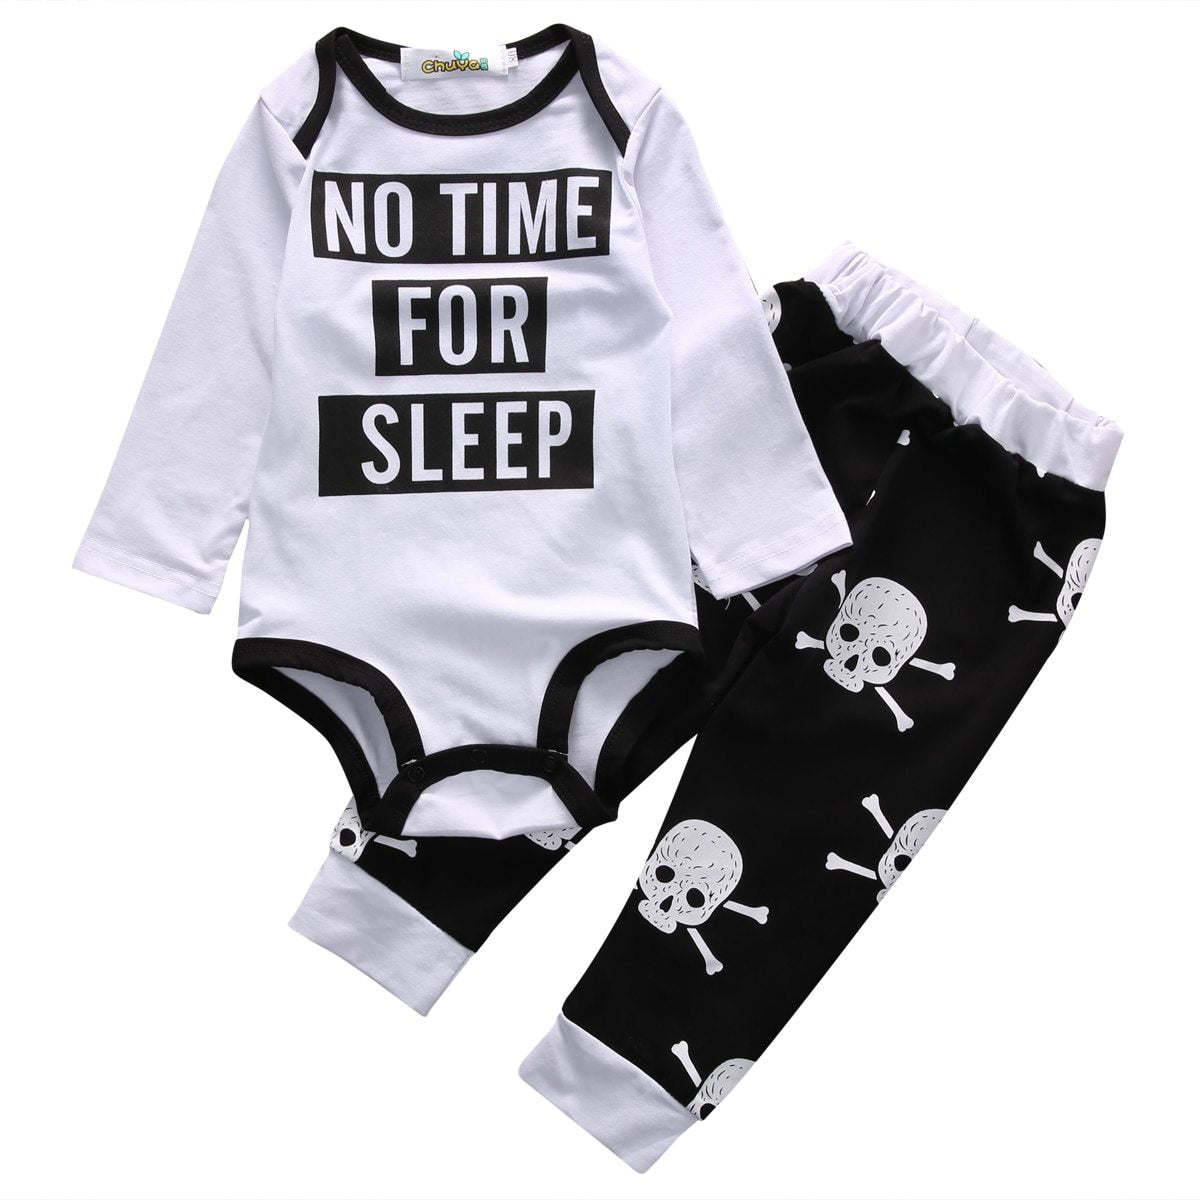 2016 Autumn style infant clothes baby clothing sets Baby Boy Girl Skulldresskily-dresskily